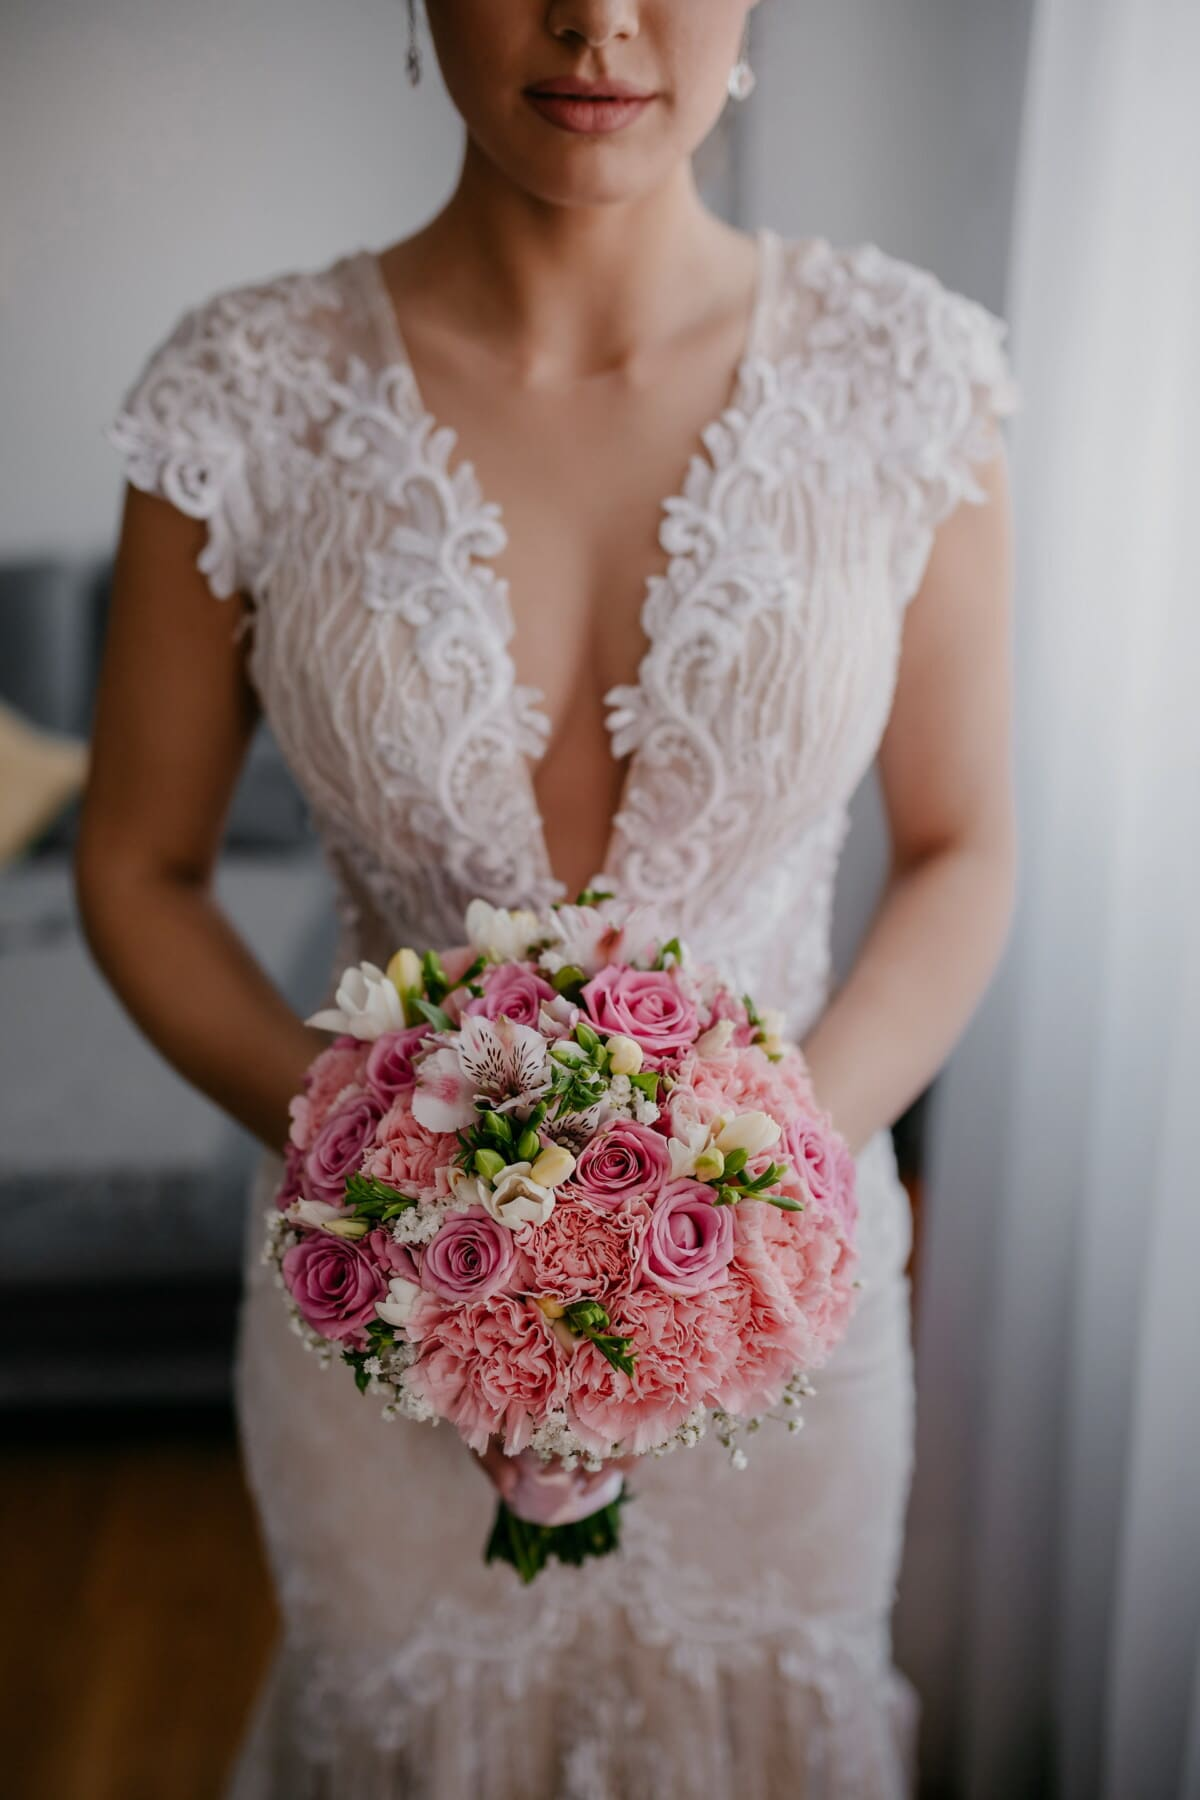 standing, bride, holding, wedding bouquet, woman, wedding, elegant, fashion, pretty, bouquet